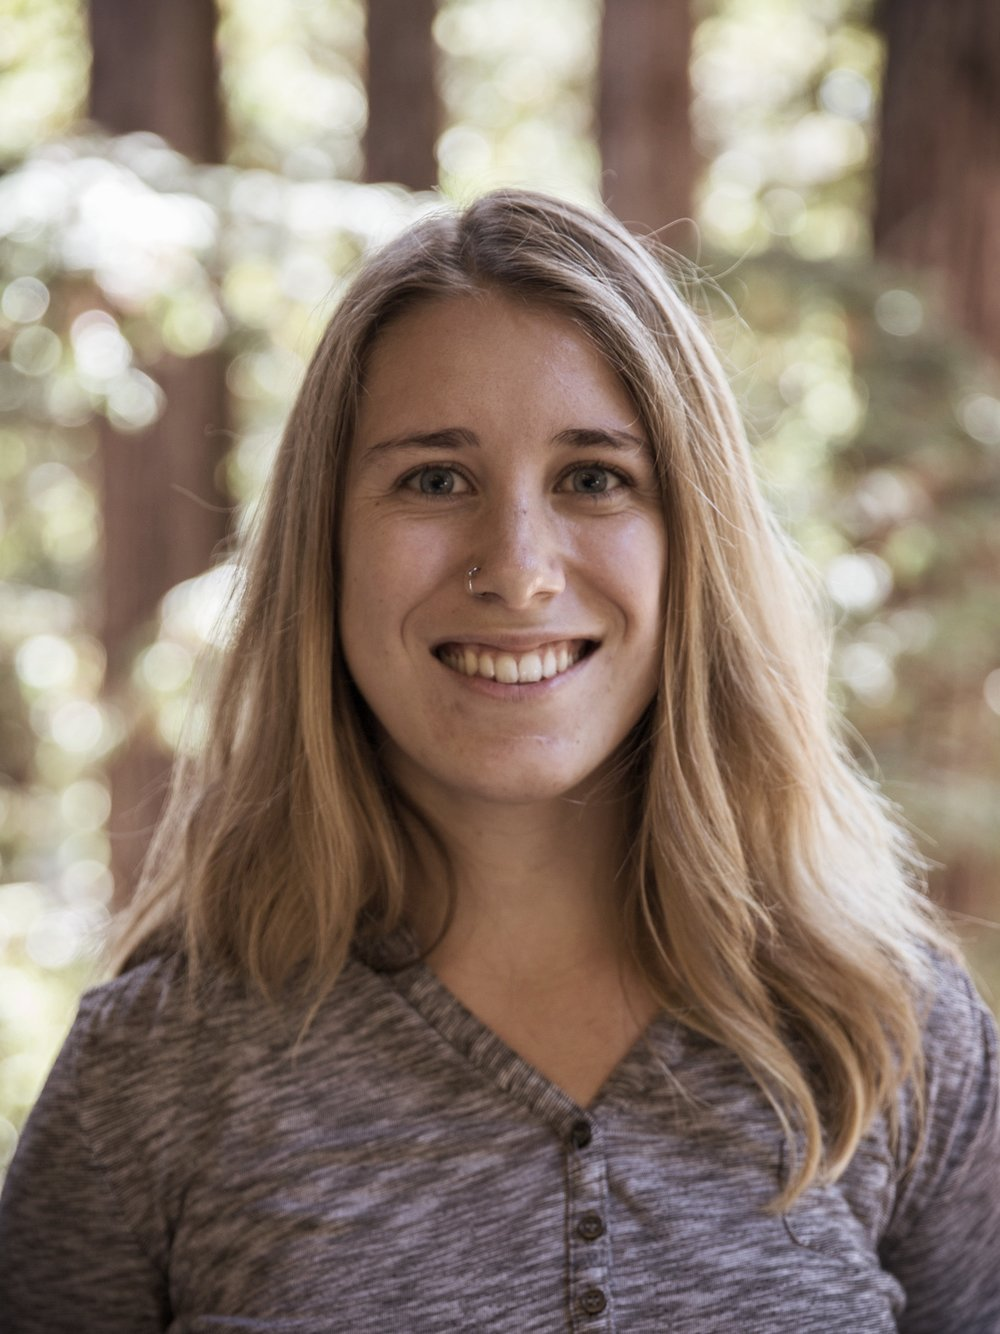 Sierra Jade Catelani   Sierra Catelani received her B.S. in Electrical Engineering at UC Santa Cruz (2016). She completed her M.S. in EE at UC Santa Cruz (2017) while advised by Professor Ahmet A. Yanik, where she focused on developing piezoelectric phononic crystal devices for SAW manipulation. Her research topics included phononic crystal design and SAW microfluidics for Lab-on-a-Chip (LOC) applications, working on integrating the two technologies to create novel LOC processes.